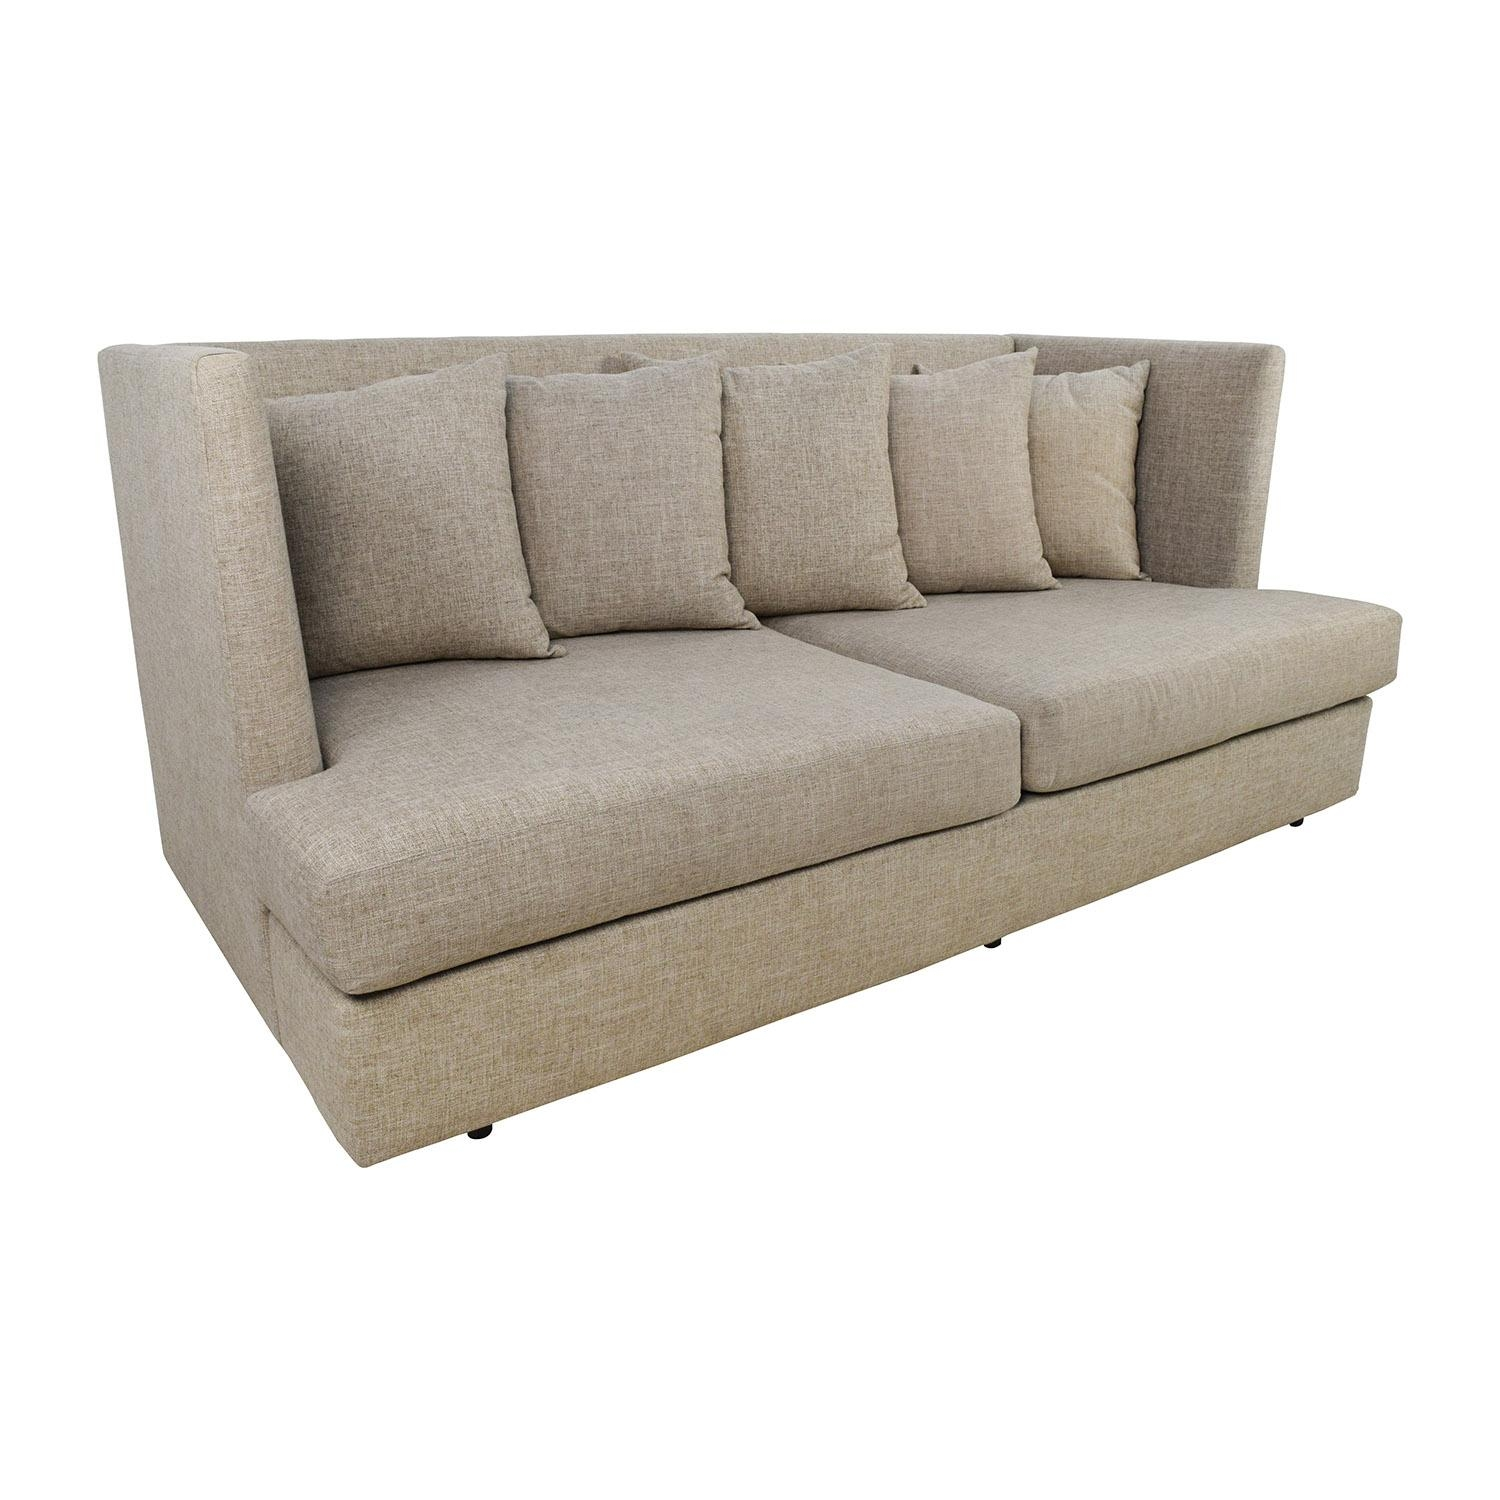 34% Off - Crate And Barrel Crate & Barrel Shelter Beige Couch / Sofas regarding Crate And Barrel Sofa Sleepers